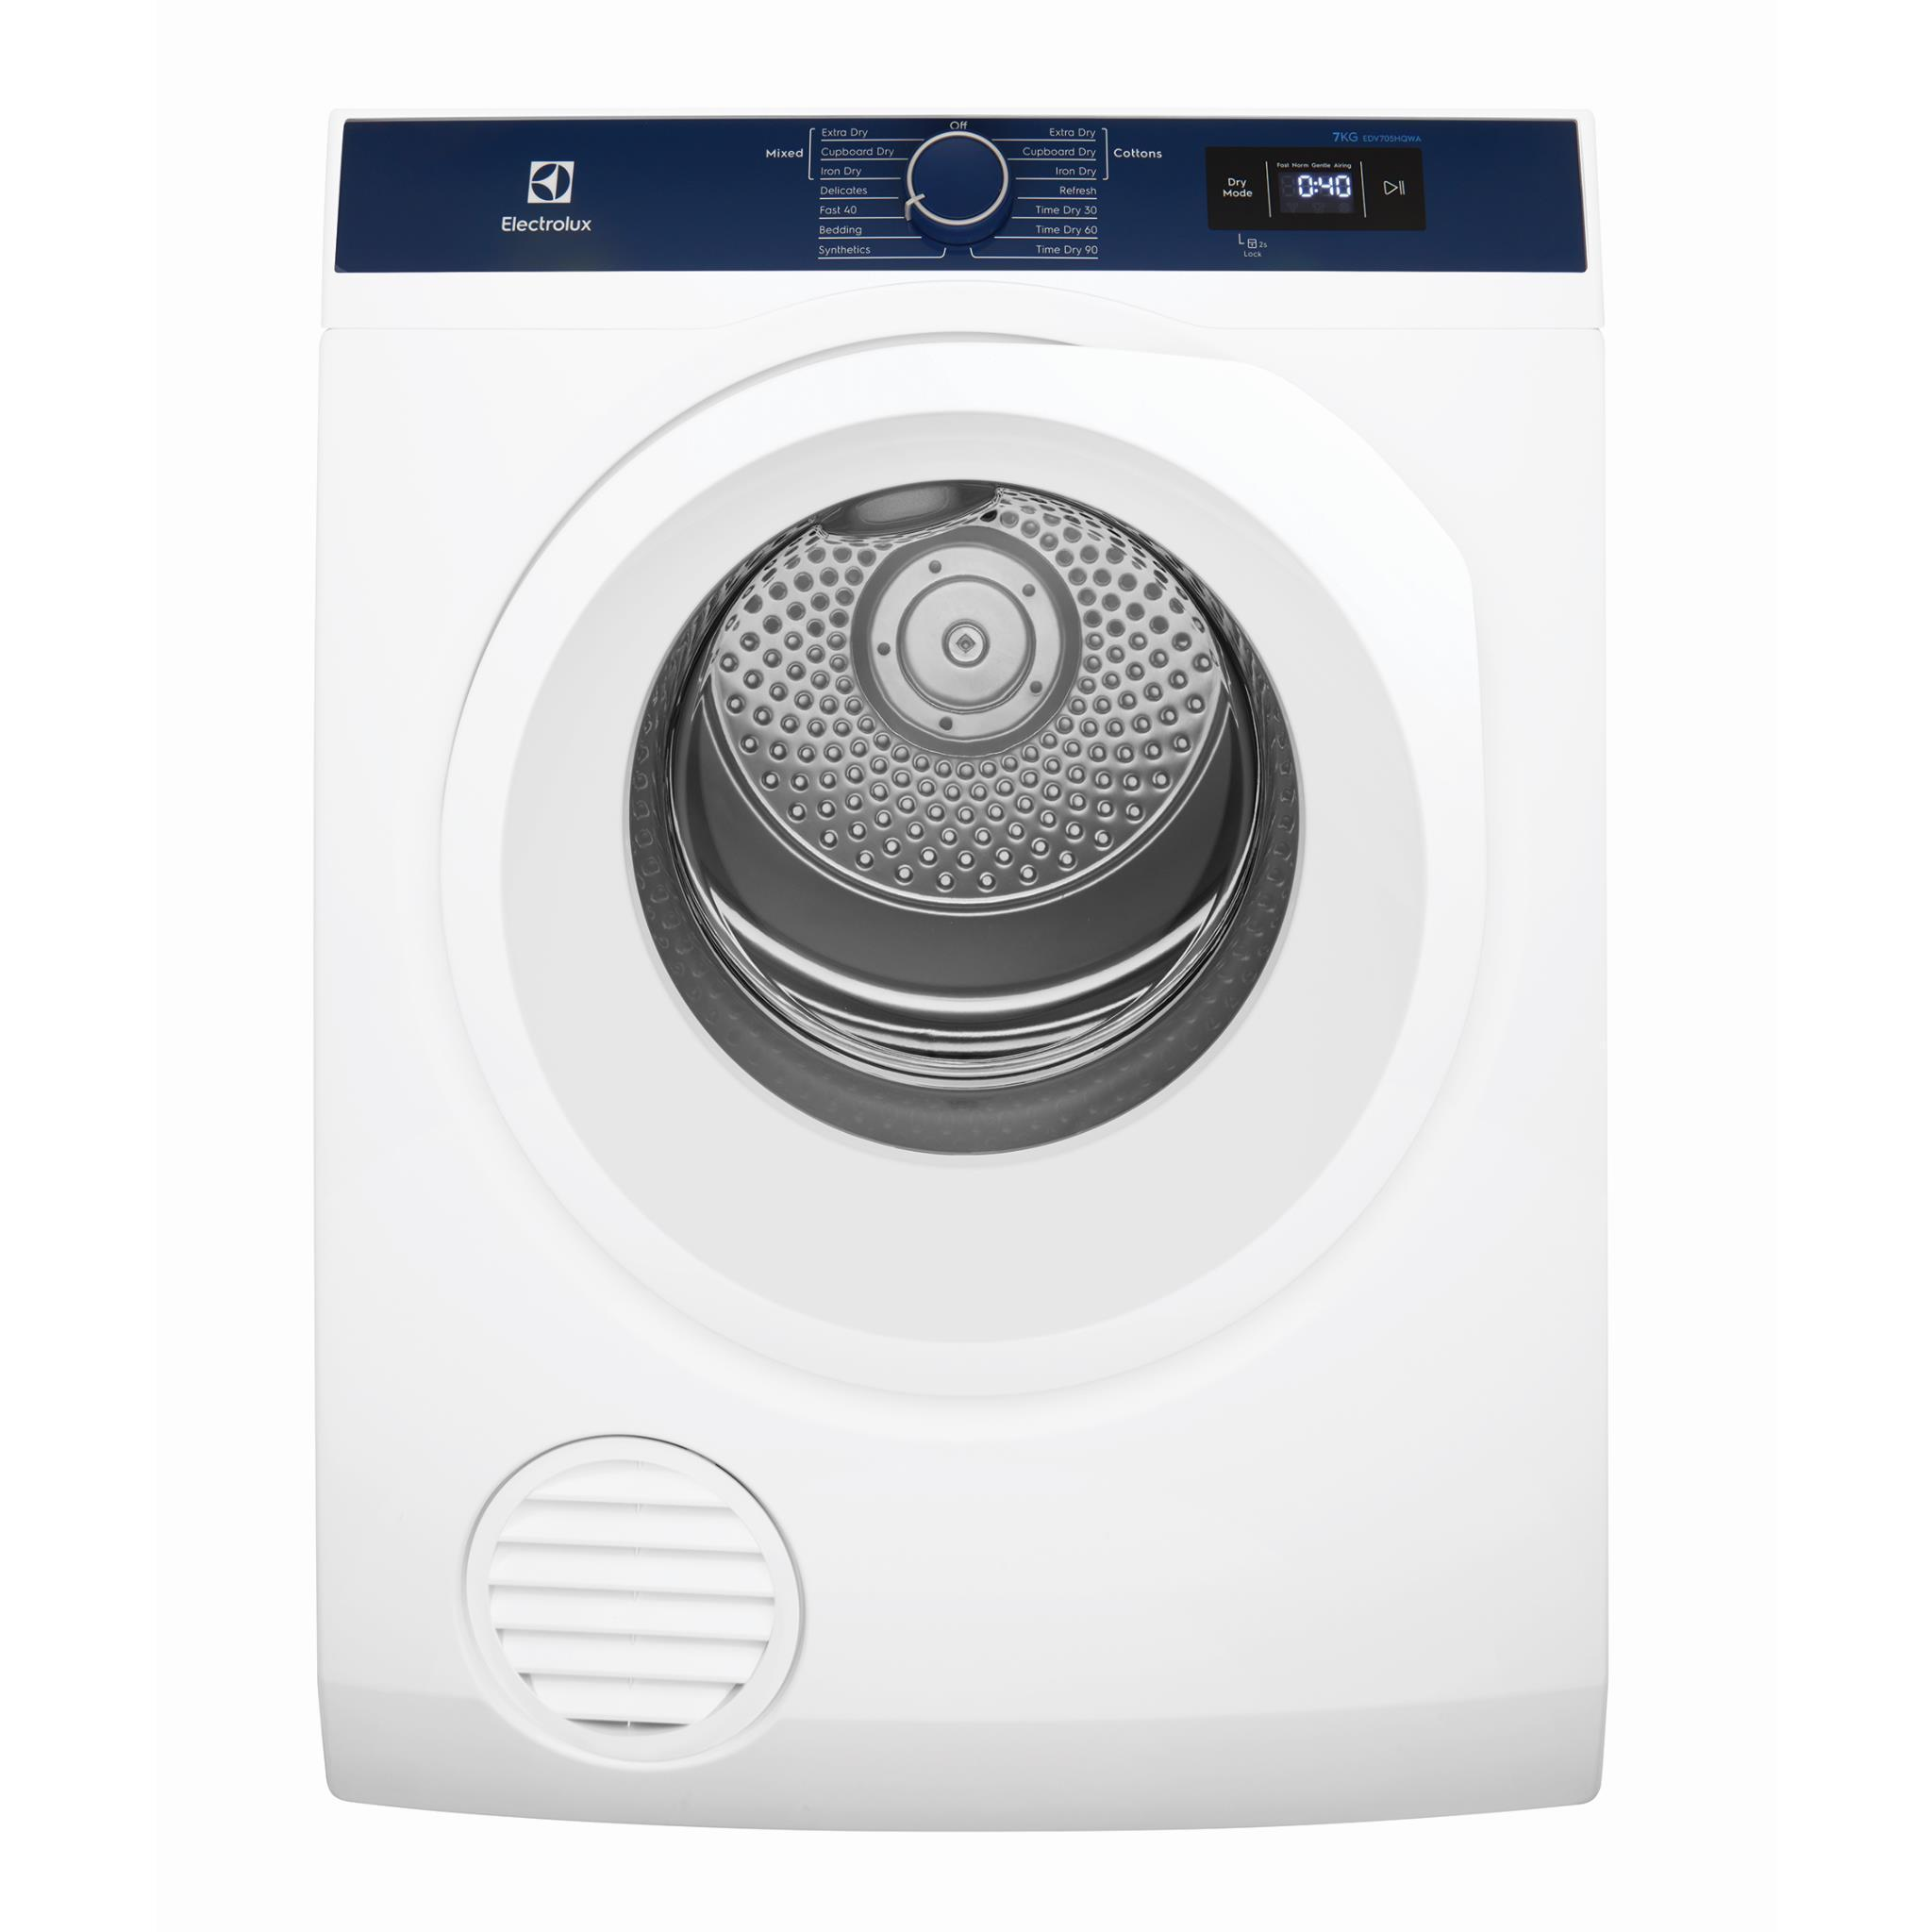 Electrolux EDV705HQWA 7kg Auto Vented Dryer